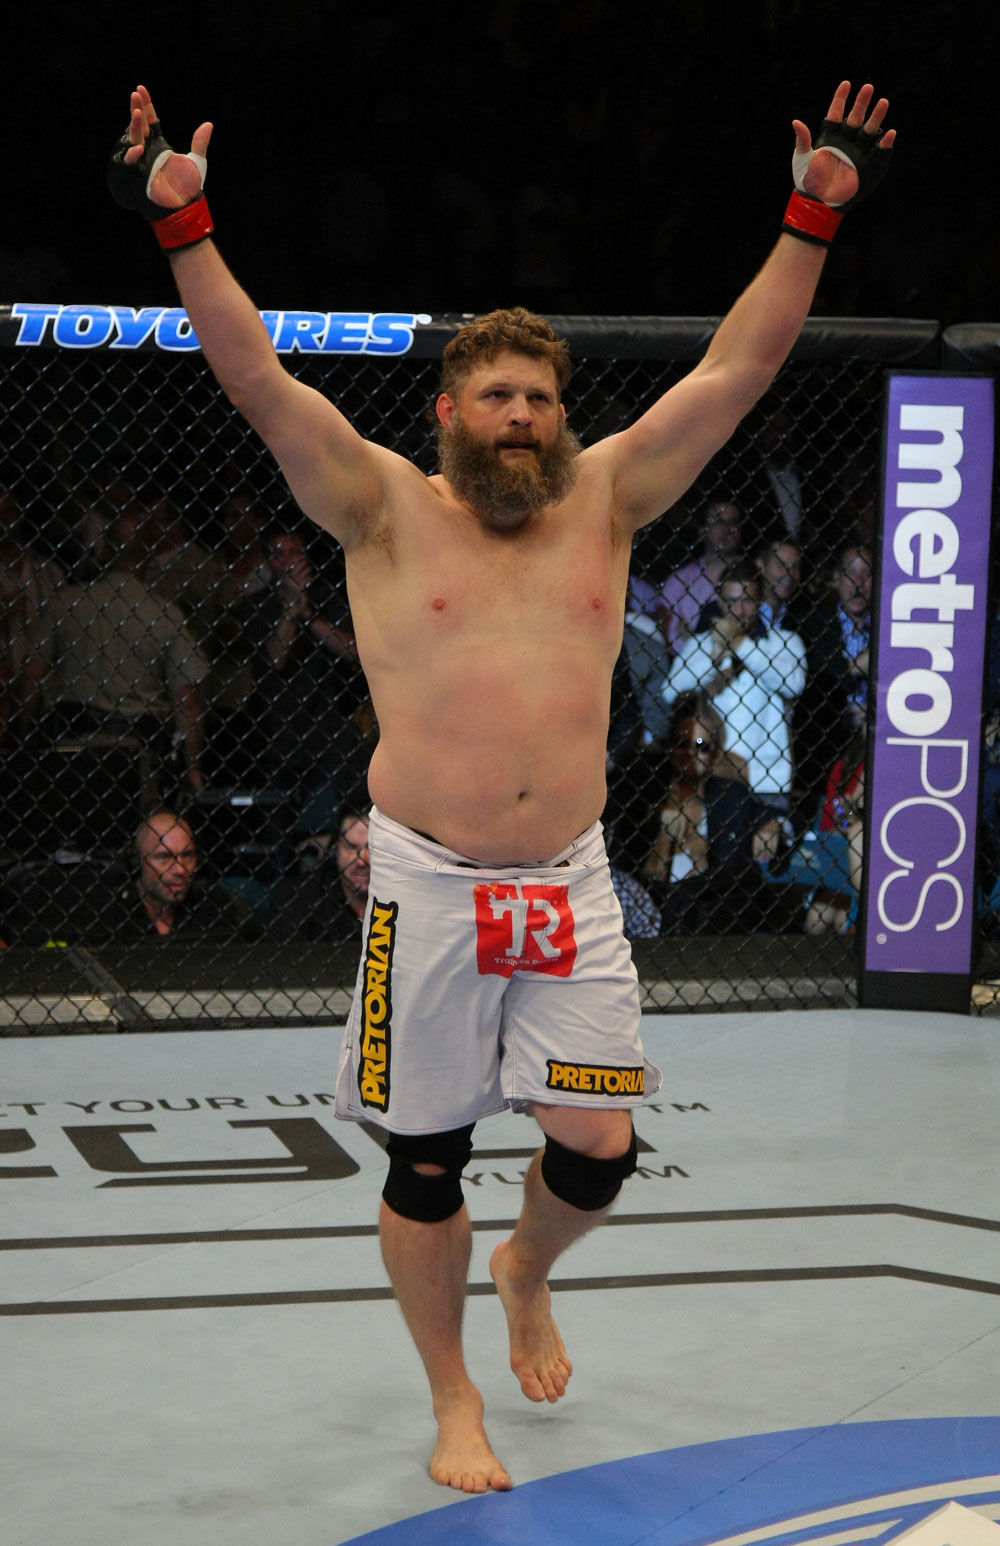 The Ultimate Fighter 16 coach Roy Nelson